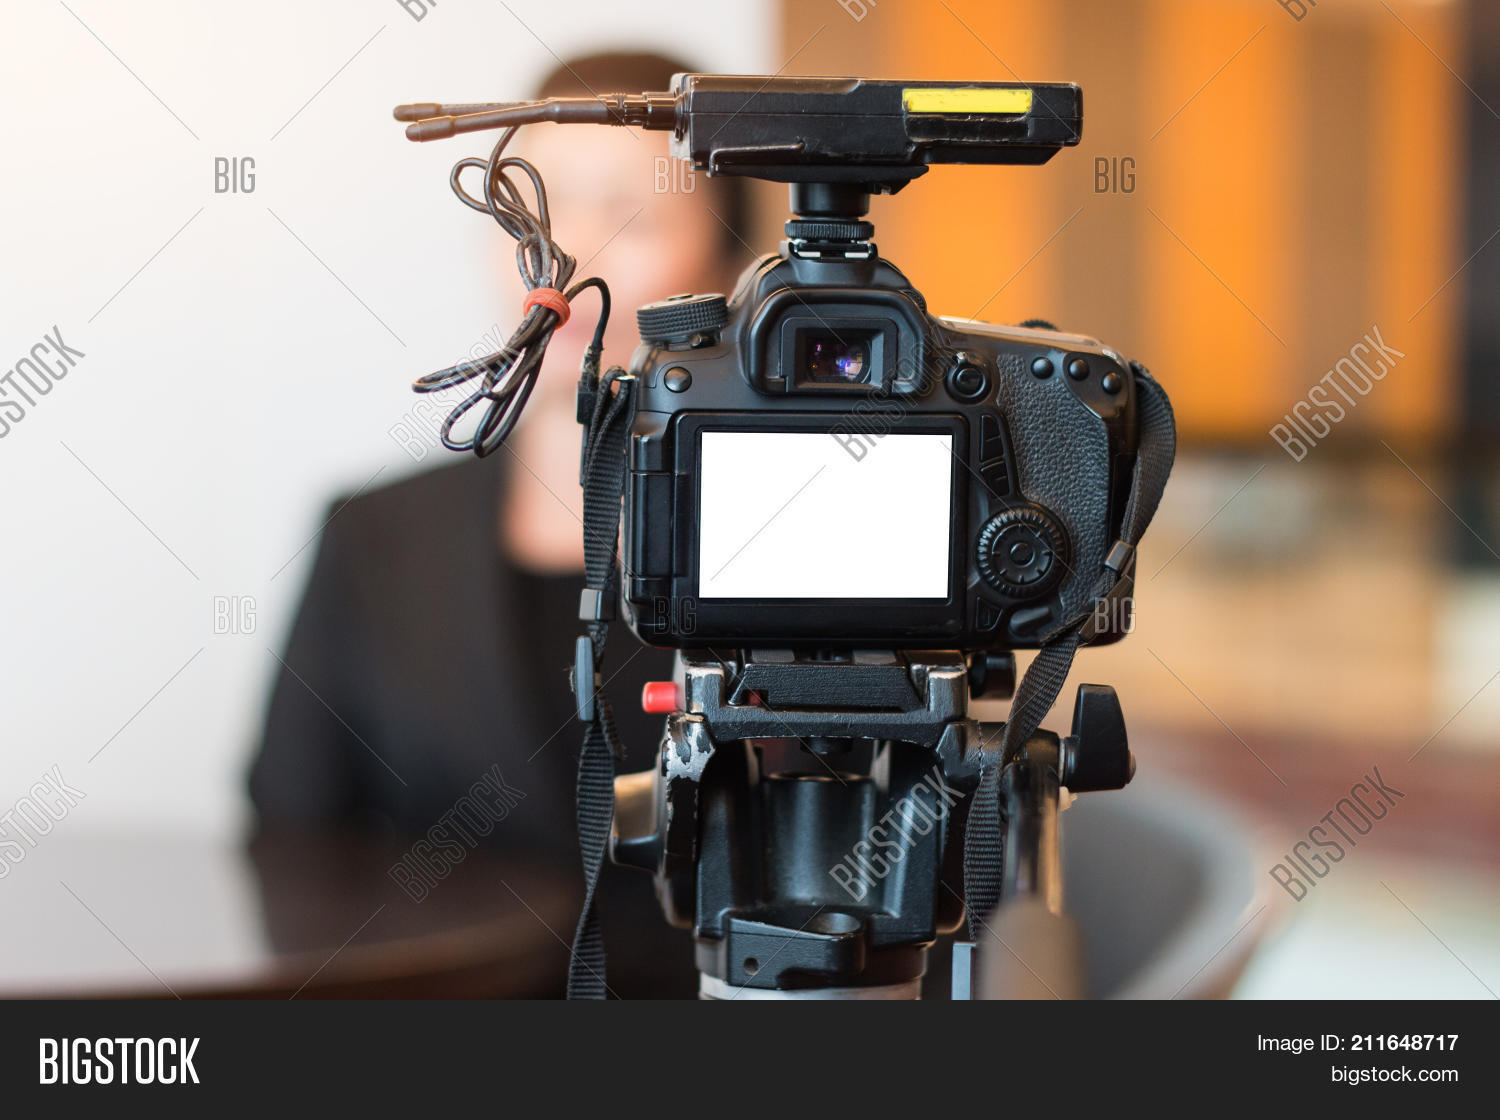 Blur Video Camera Image Photo Free Trial Bigstock